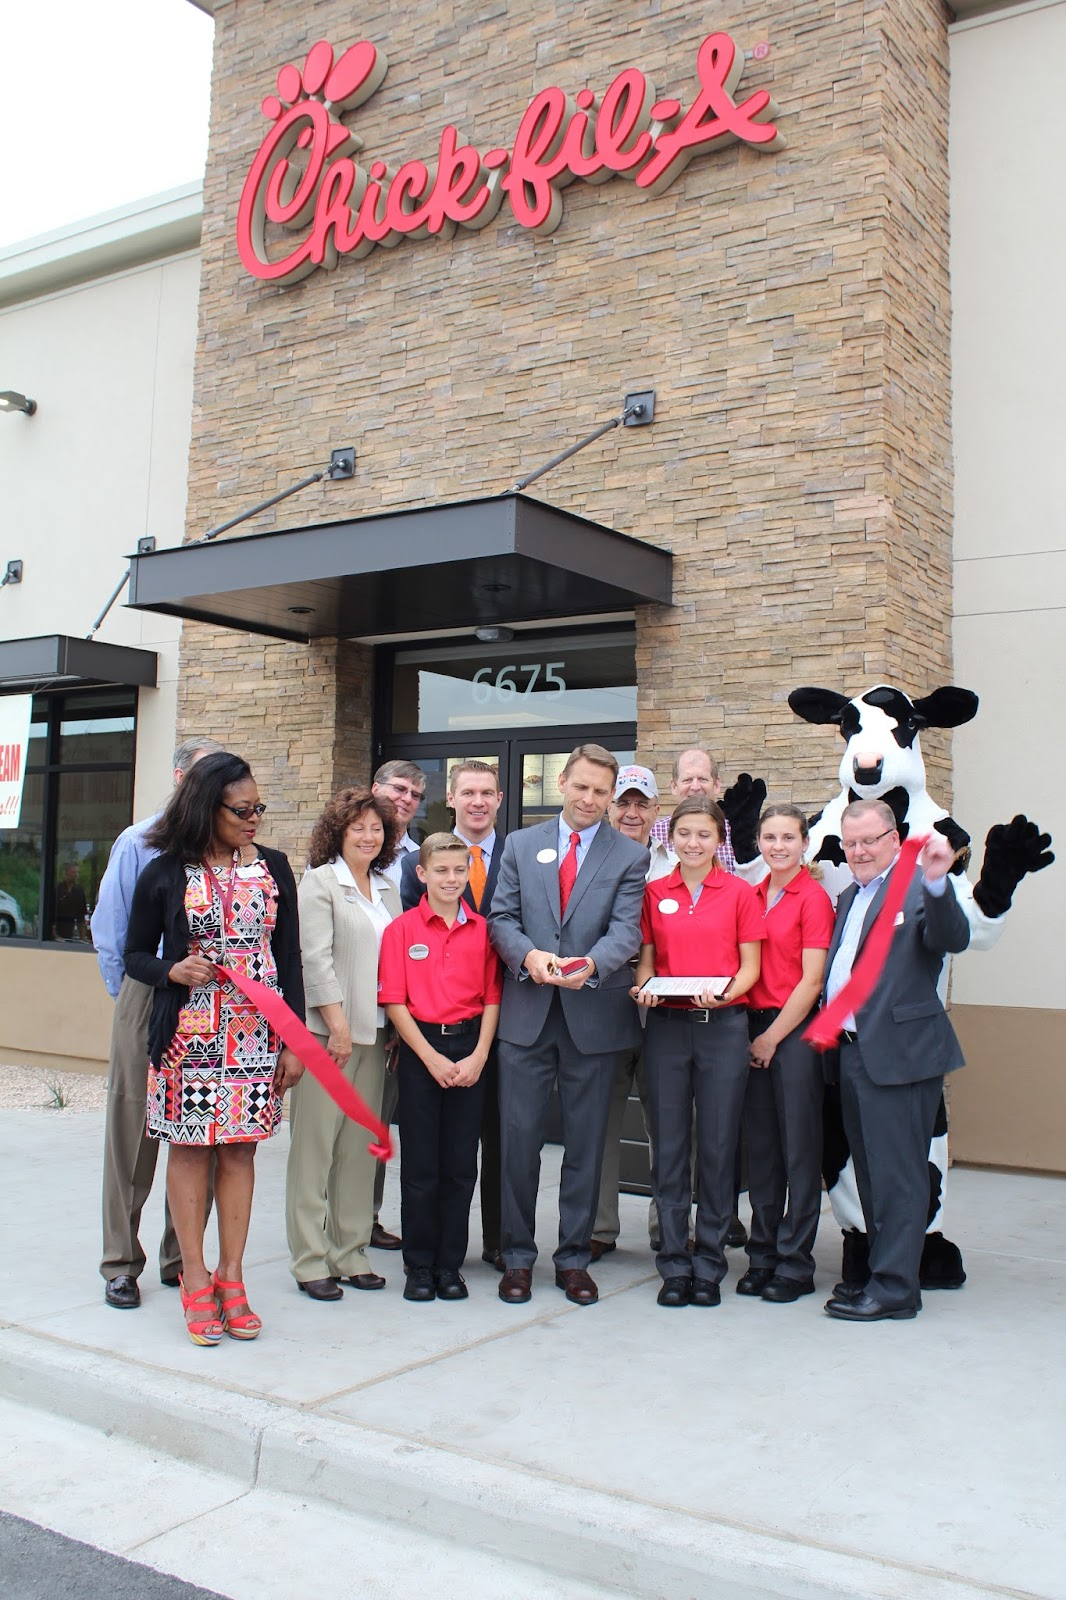 Congratulations to Chick-fil-A located at 6675 E. Grant Road, on their grand opening!